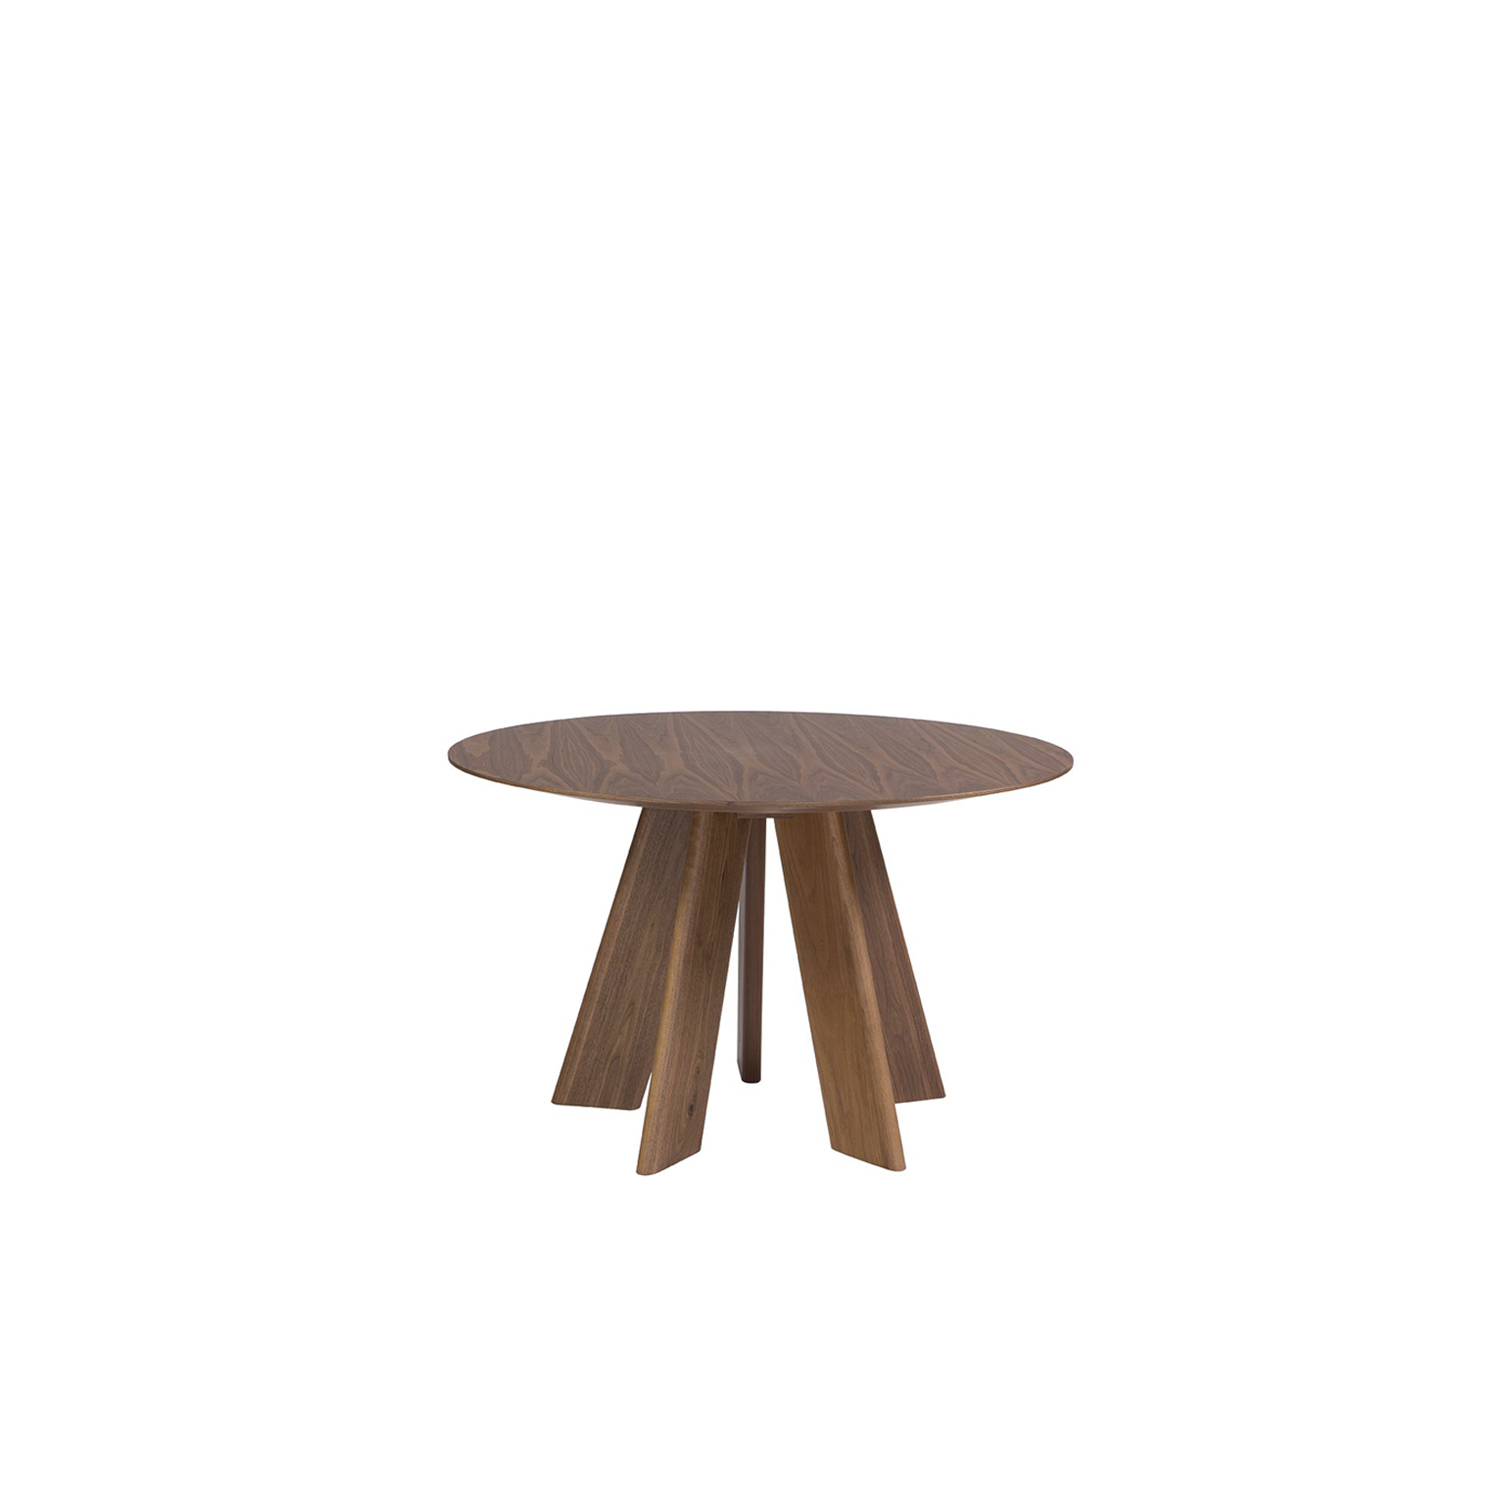 Alhambra 001 Ra Round Table - Round table in various sizes with shaped top with thin edge, base with 5 legs total lacquered or solid wood.  Maxfine Top is available for 3 sizes: Ø120 x H75 Cm, Ø130 x H75 Cm, Ø150 x H75 Cm | Matter of Stuff